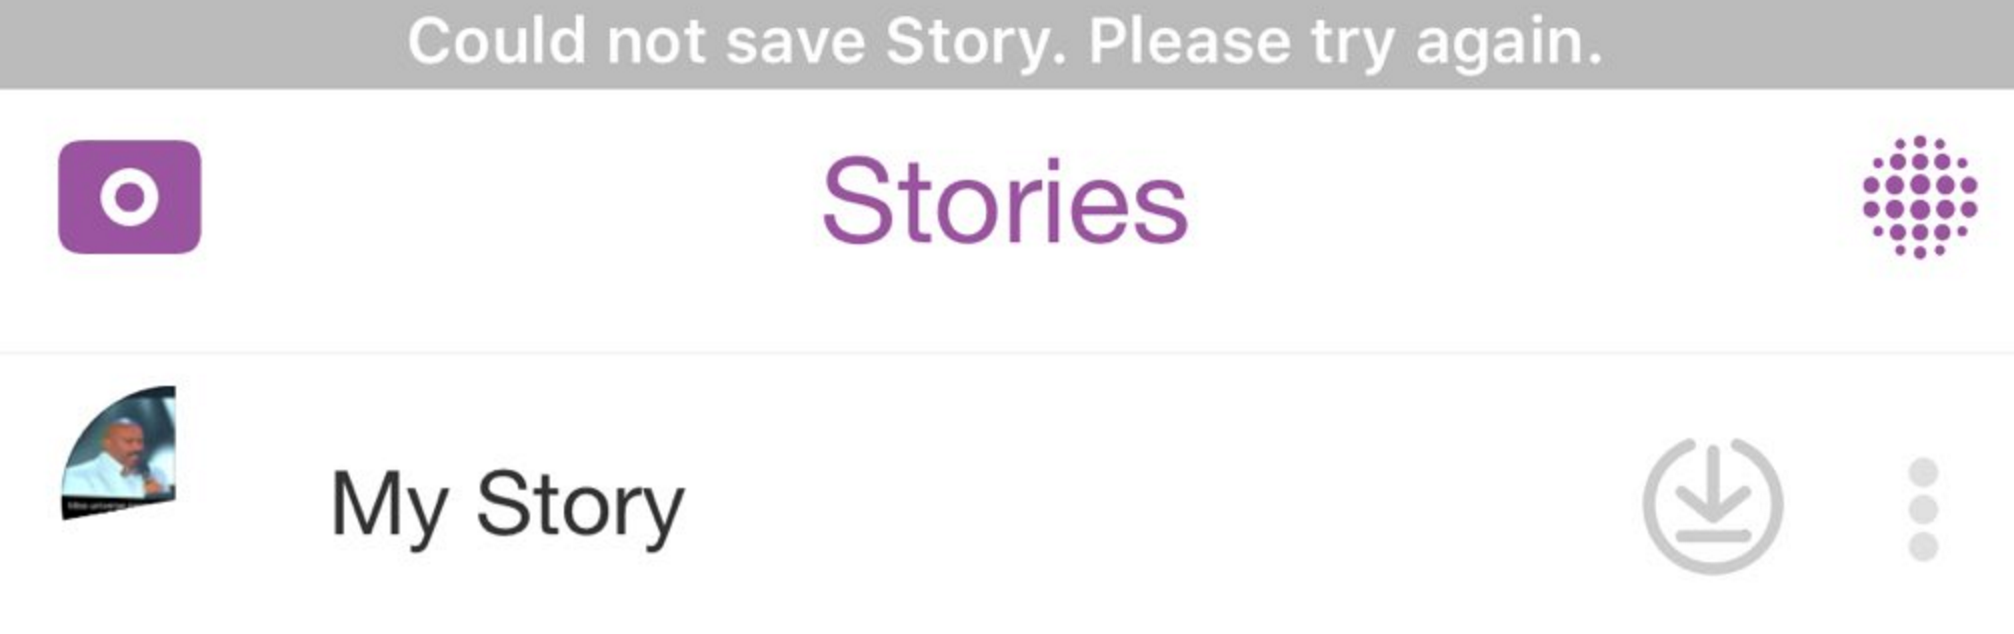 snapchat-could-not-post-story-error